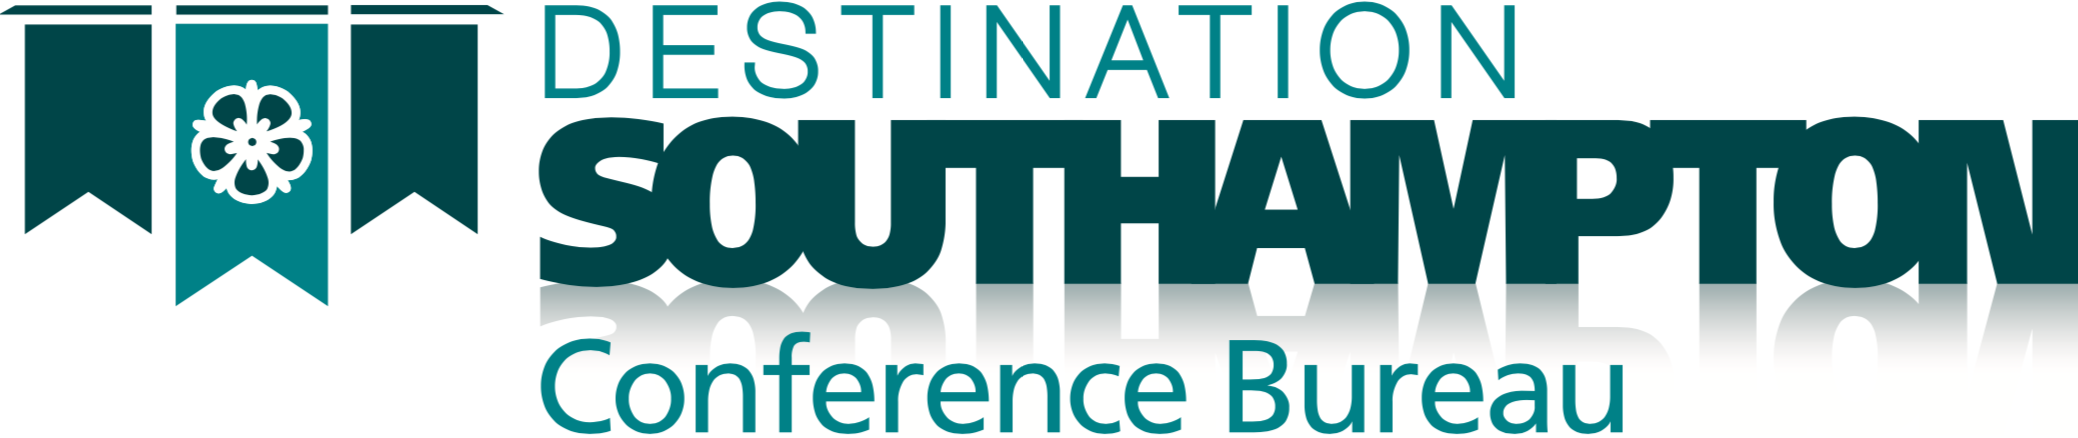 Destination Southampton Conference Bureau Logo